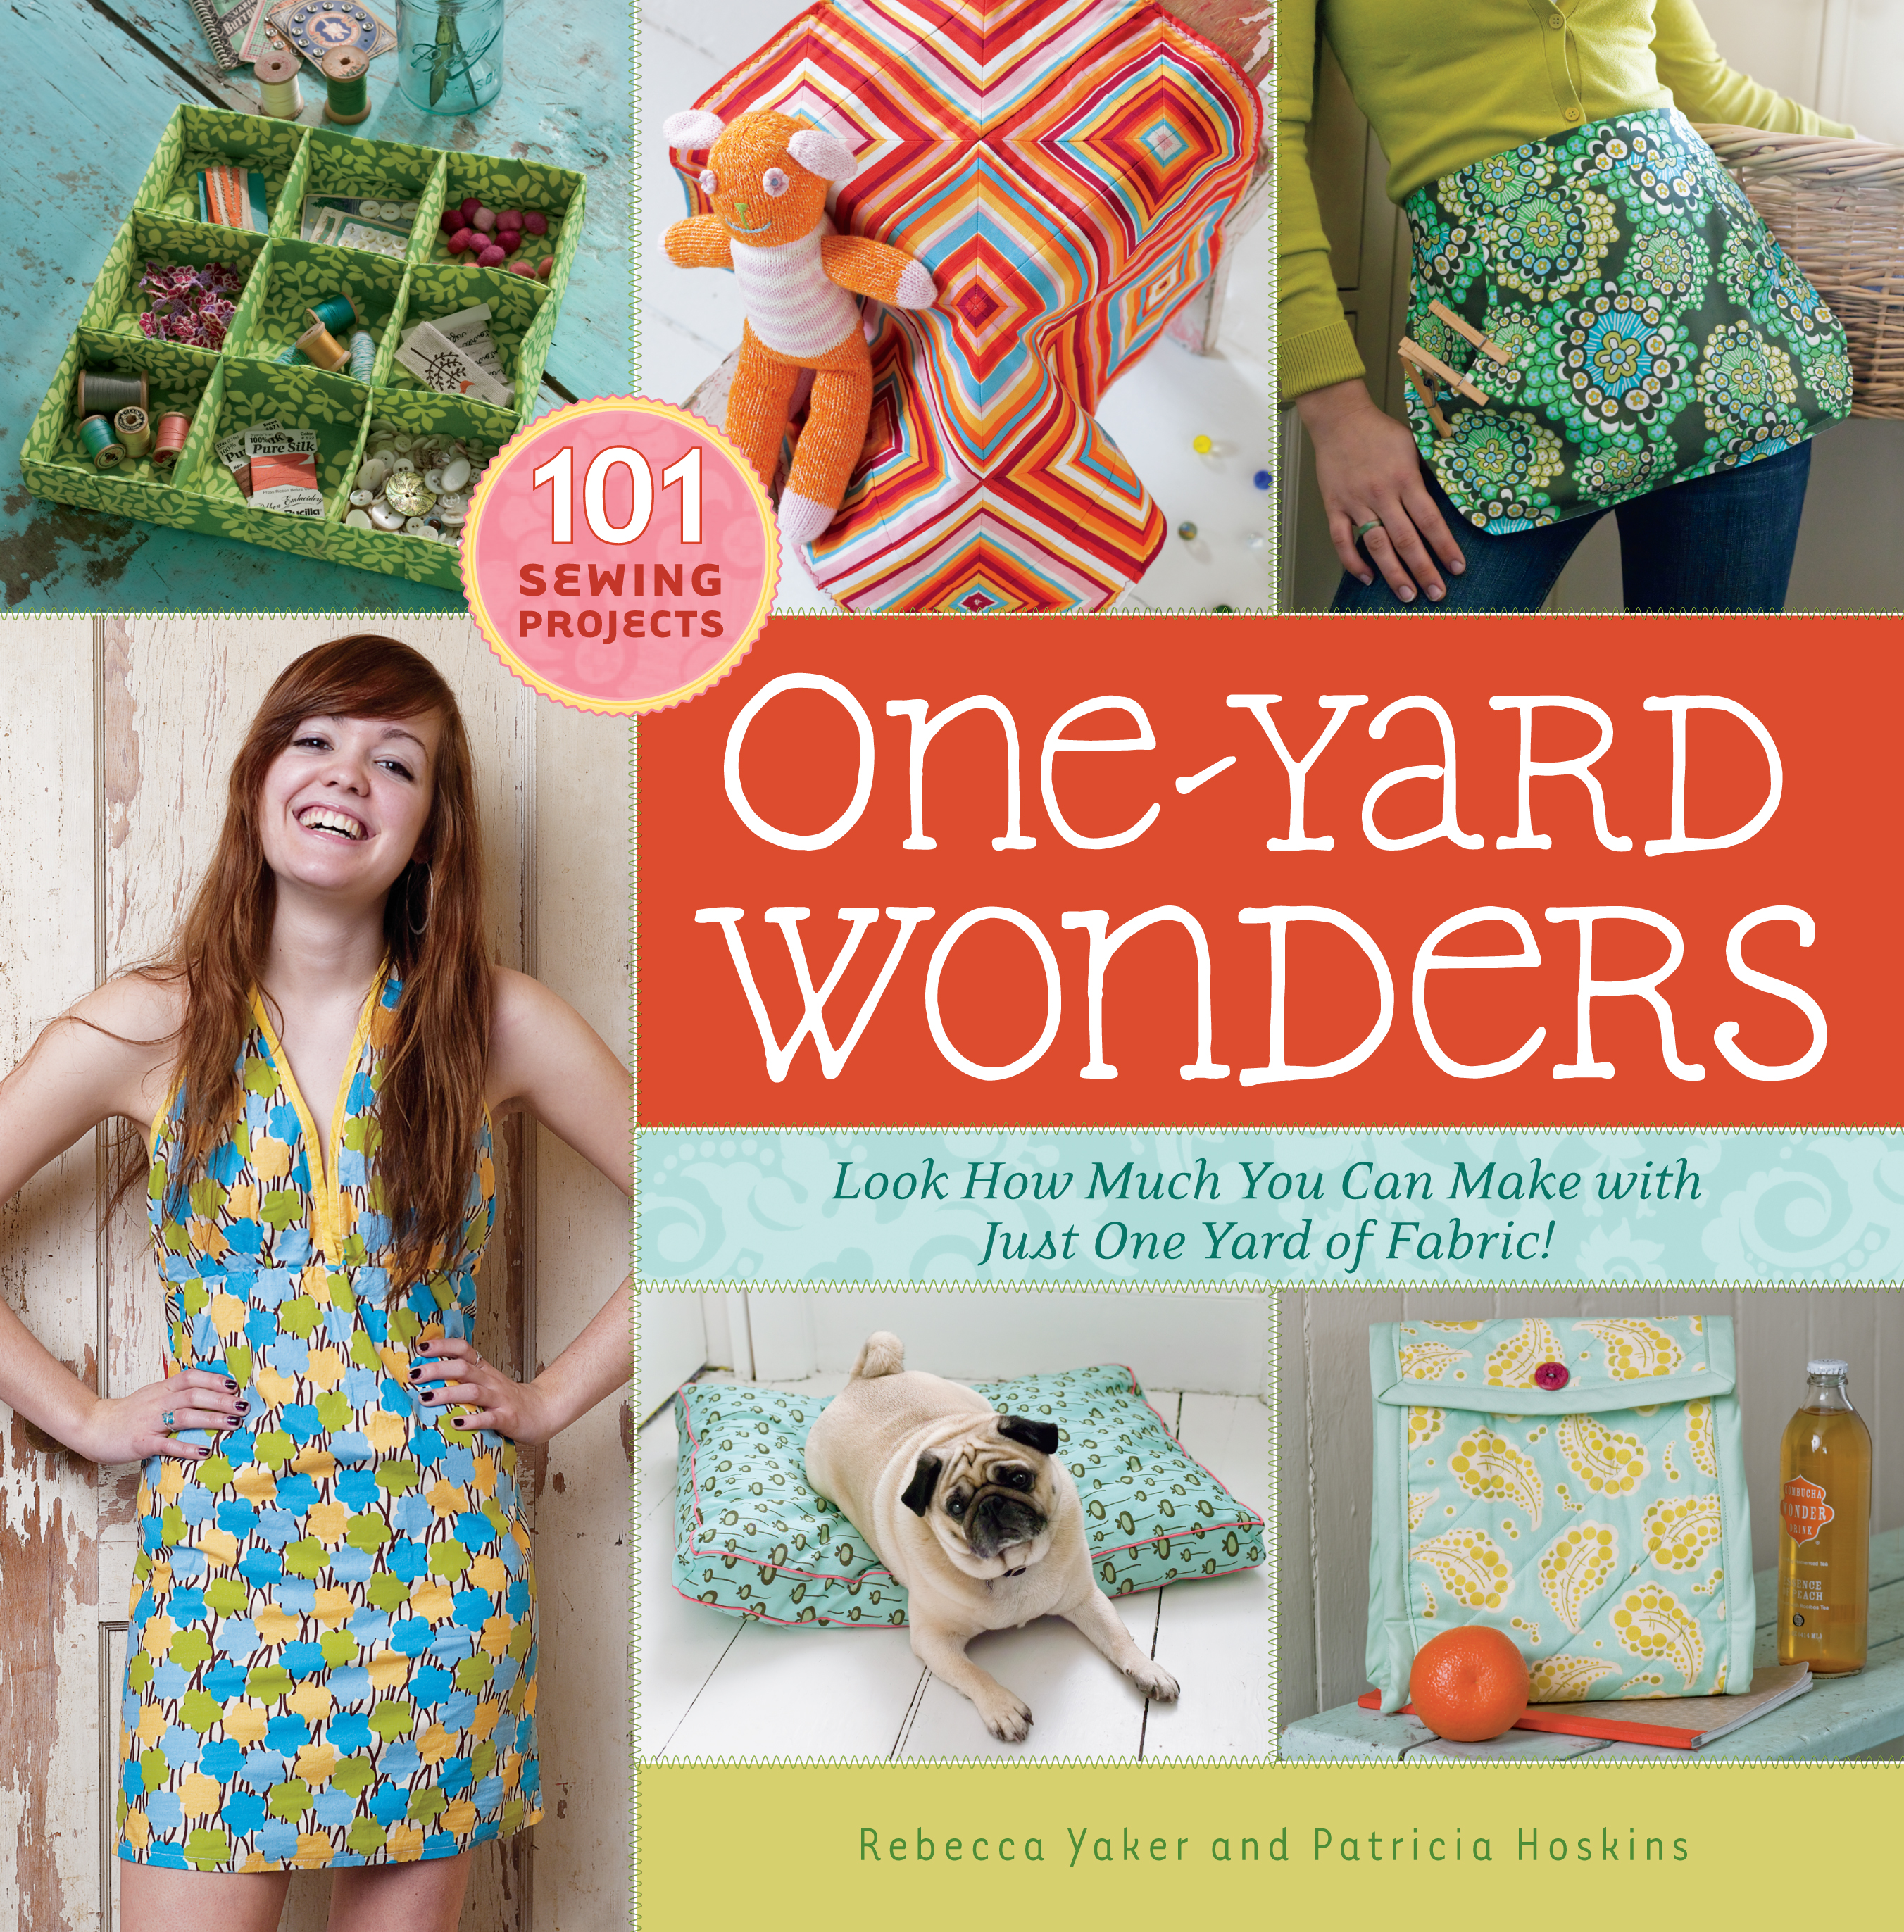 One-Yard Wonders 101 Sewing Projects; Look How Much You Can Make with Just One Yard of Fabric! - Patricia Hoskins